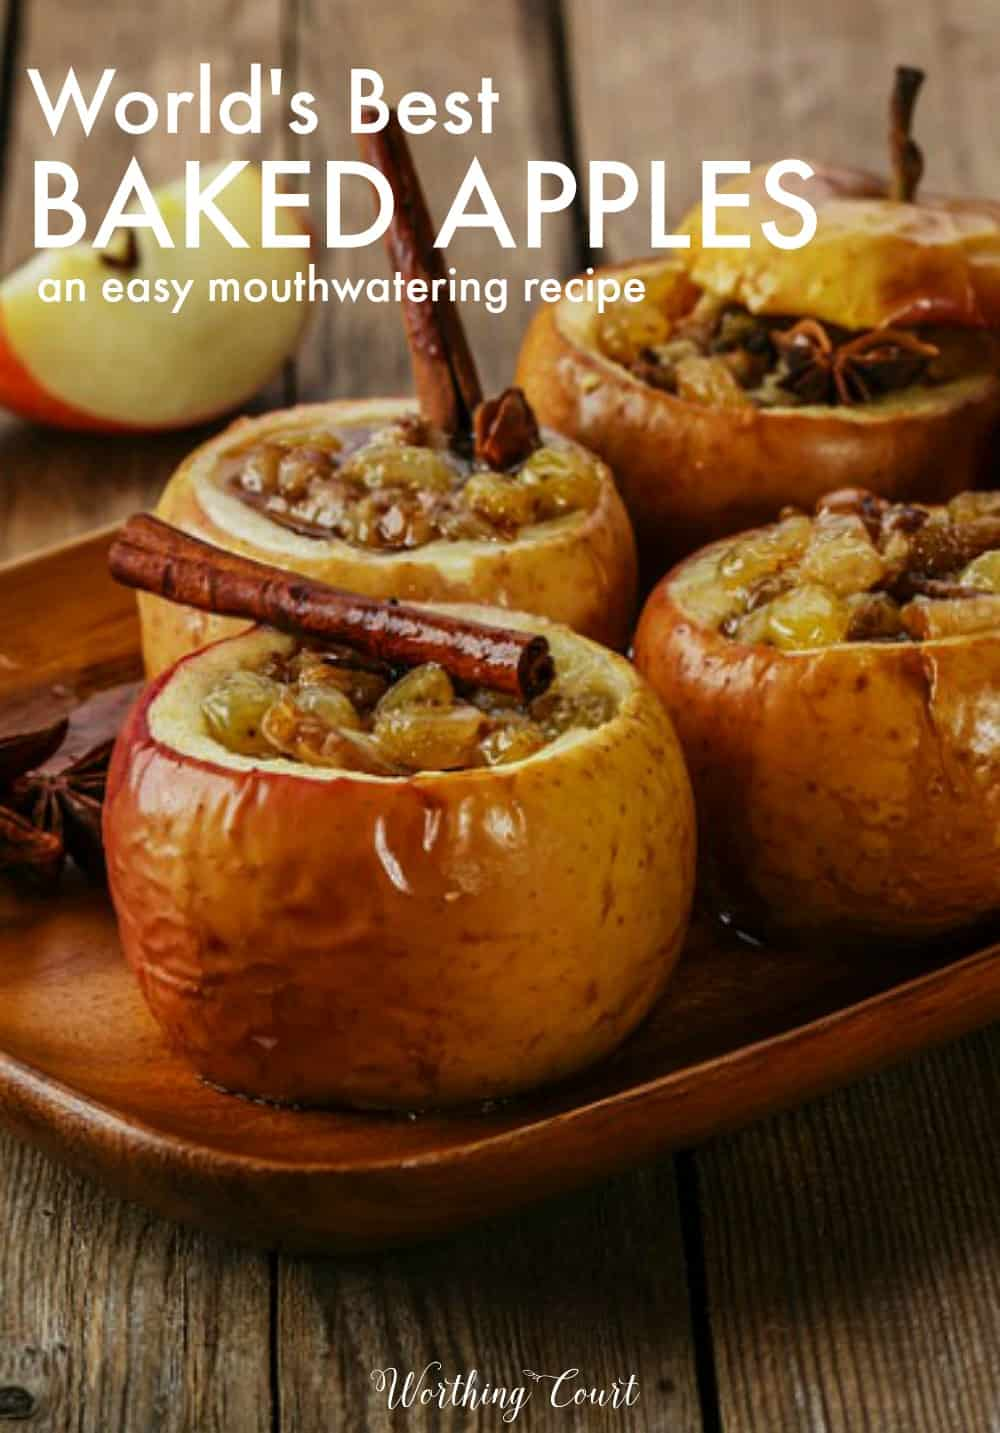 The world's best baked apples recipe graphic.